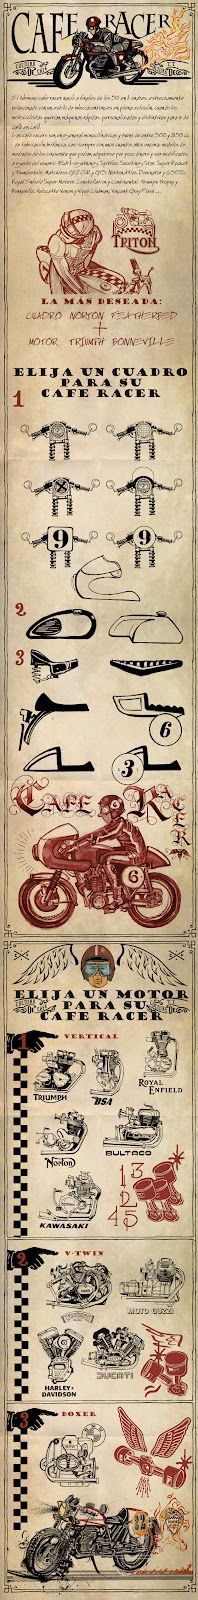 Cafe Racer Infographic